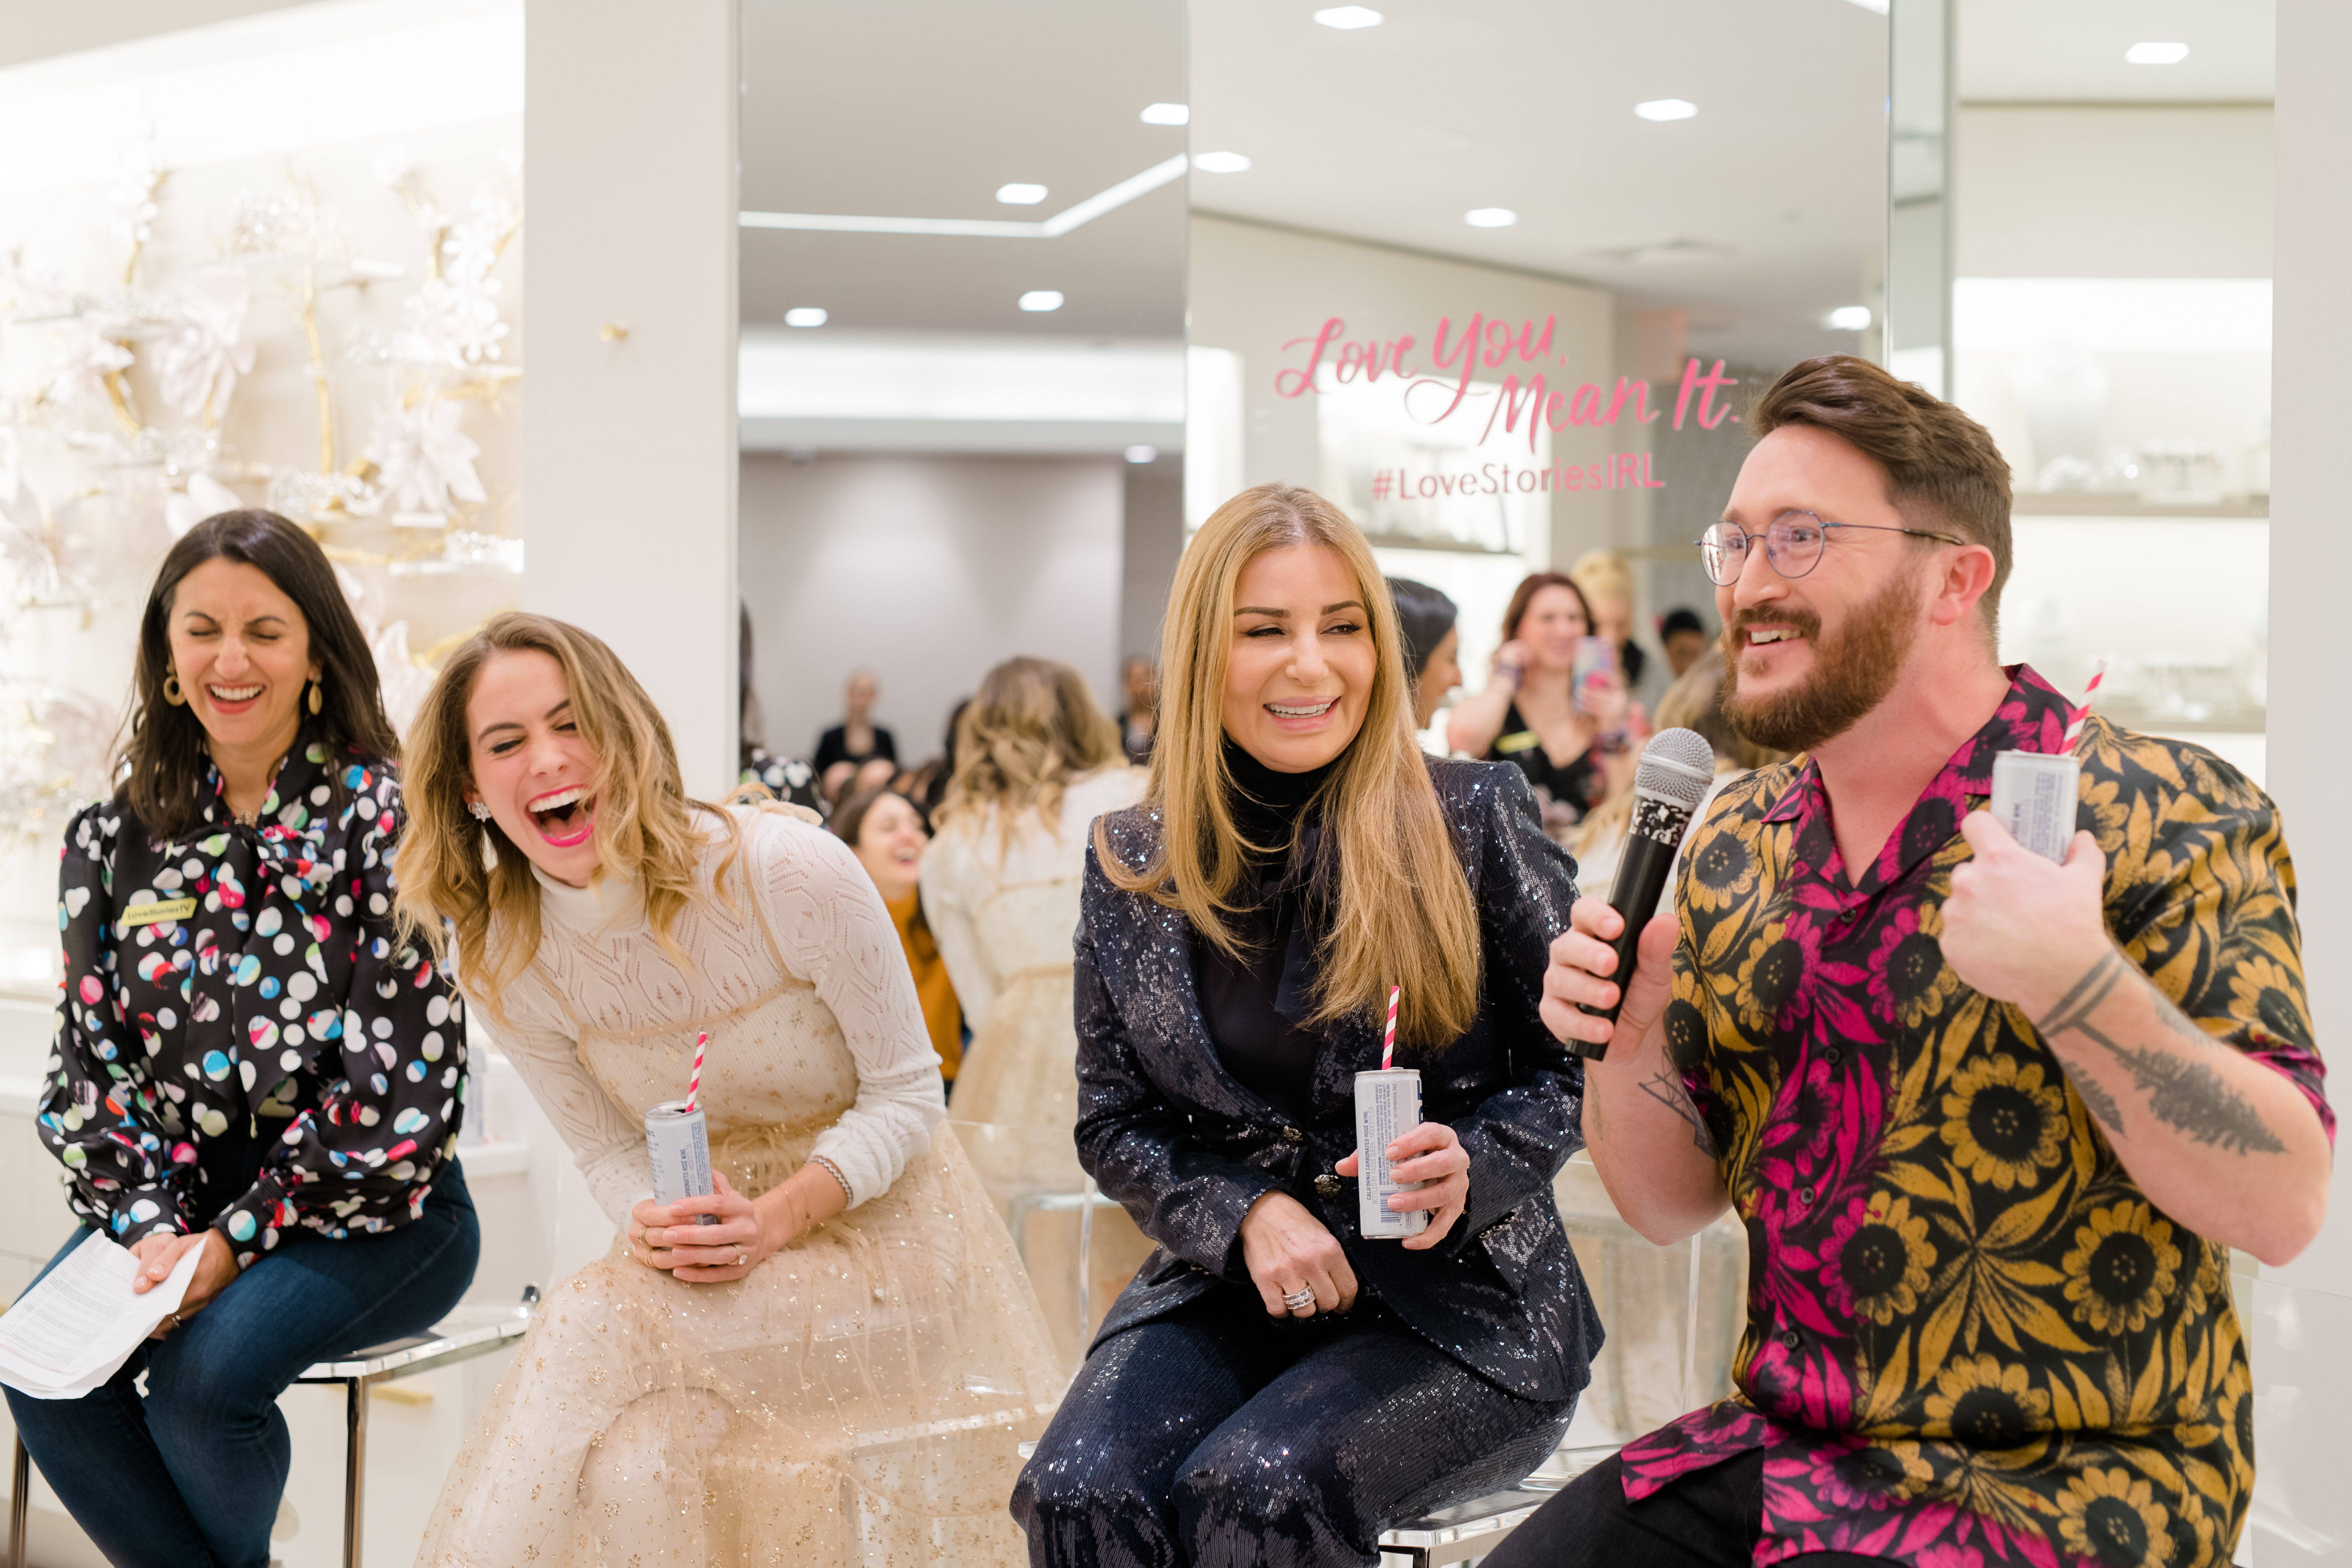 Panel at wedding event by Love Stories TV with Lucy Fink Morris, Pnina Tornai and Jove Meyer